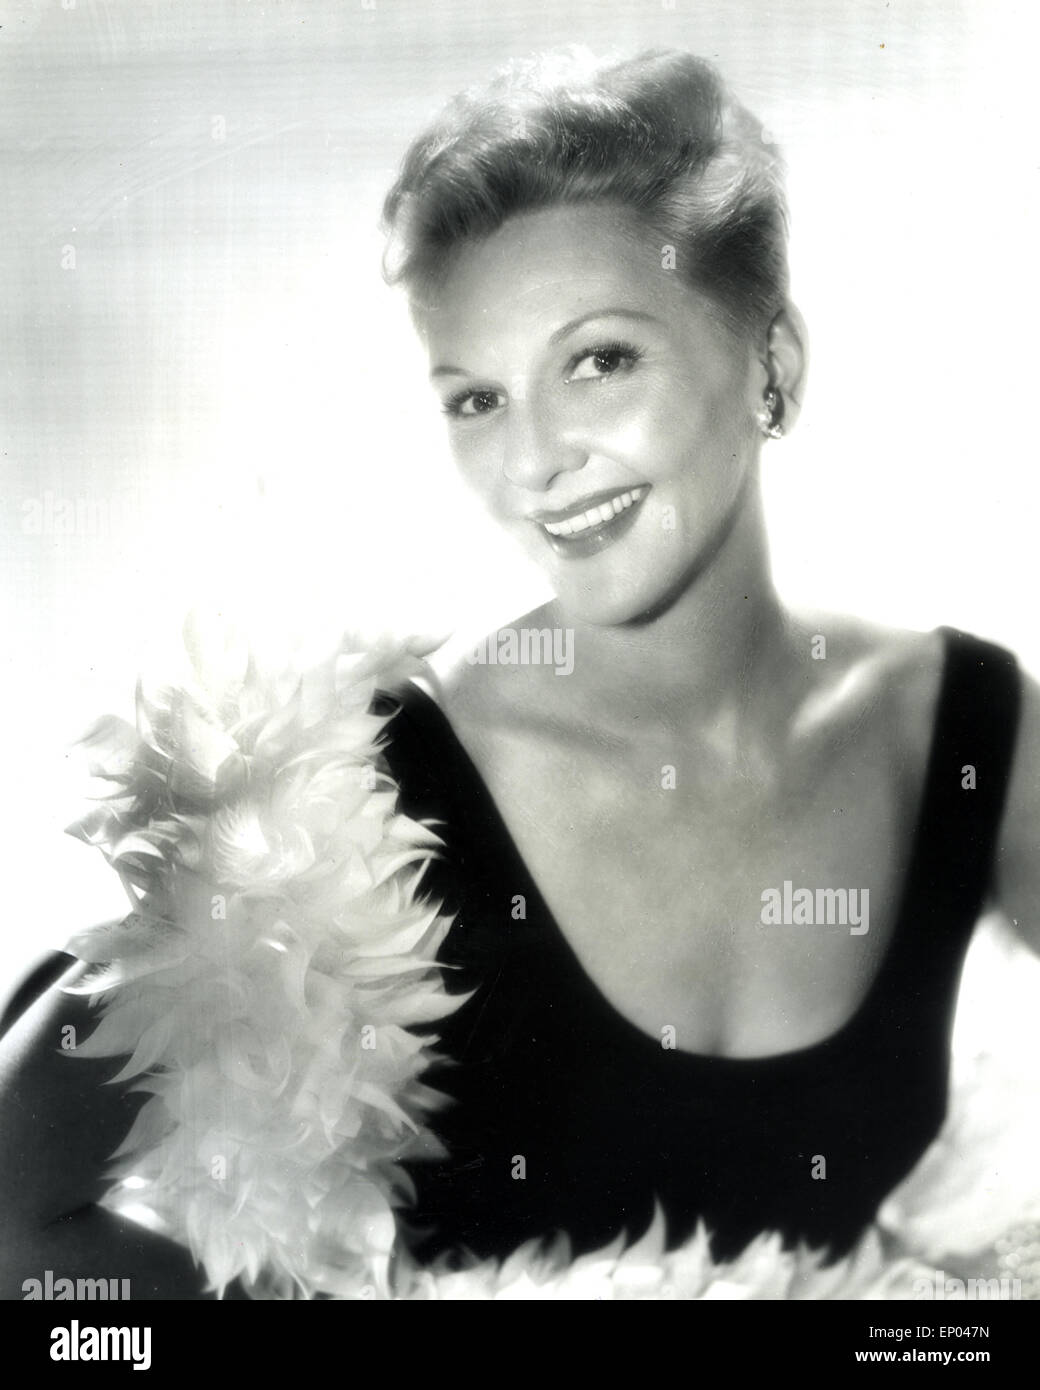 Mary Martin leaning